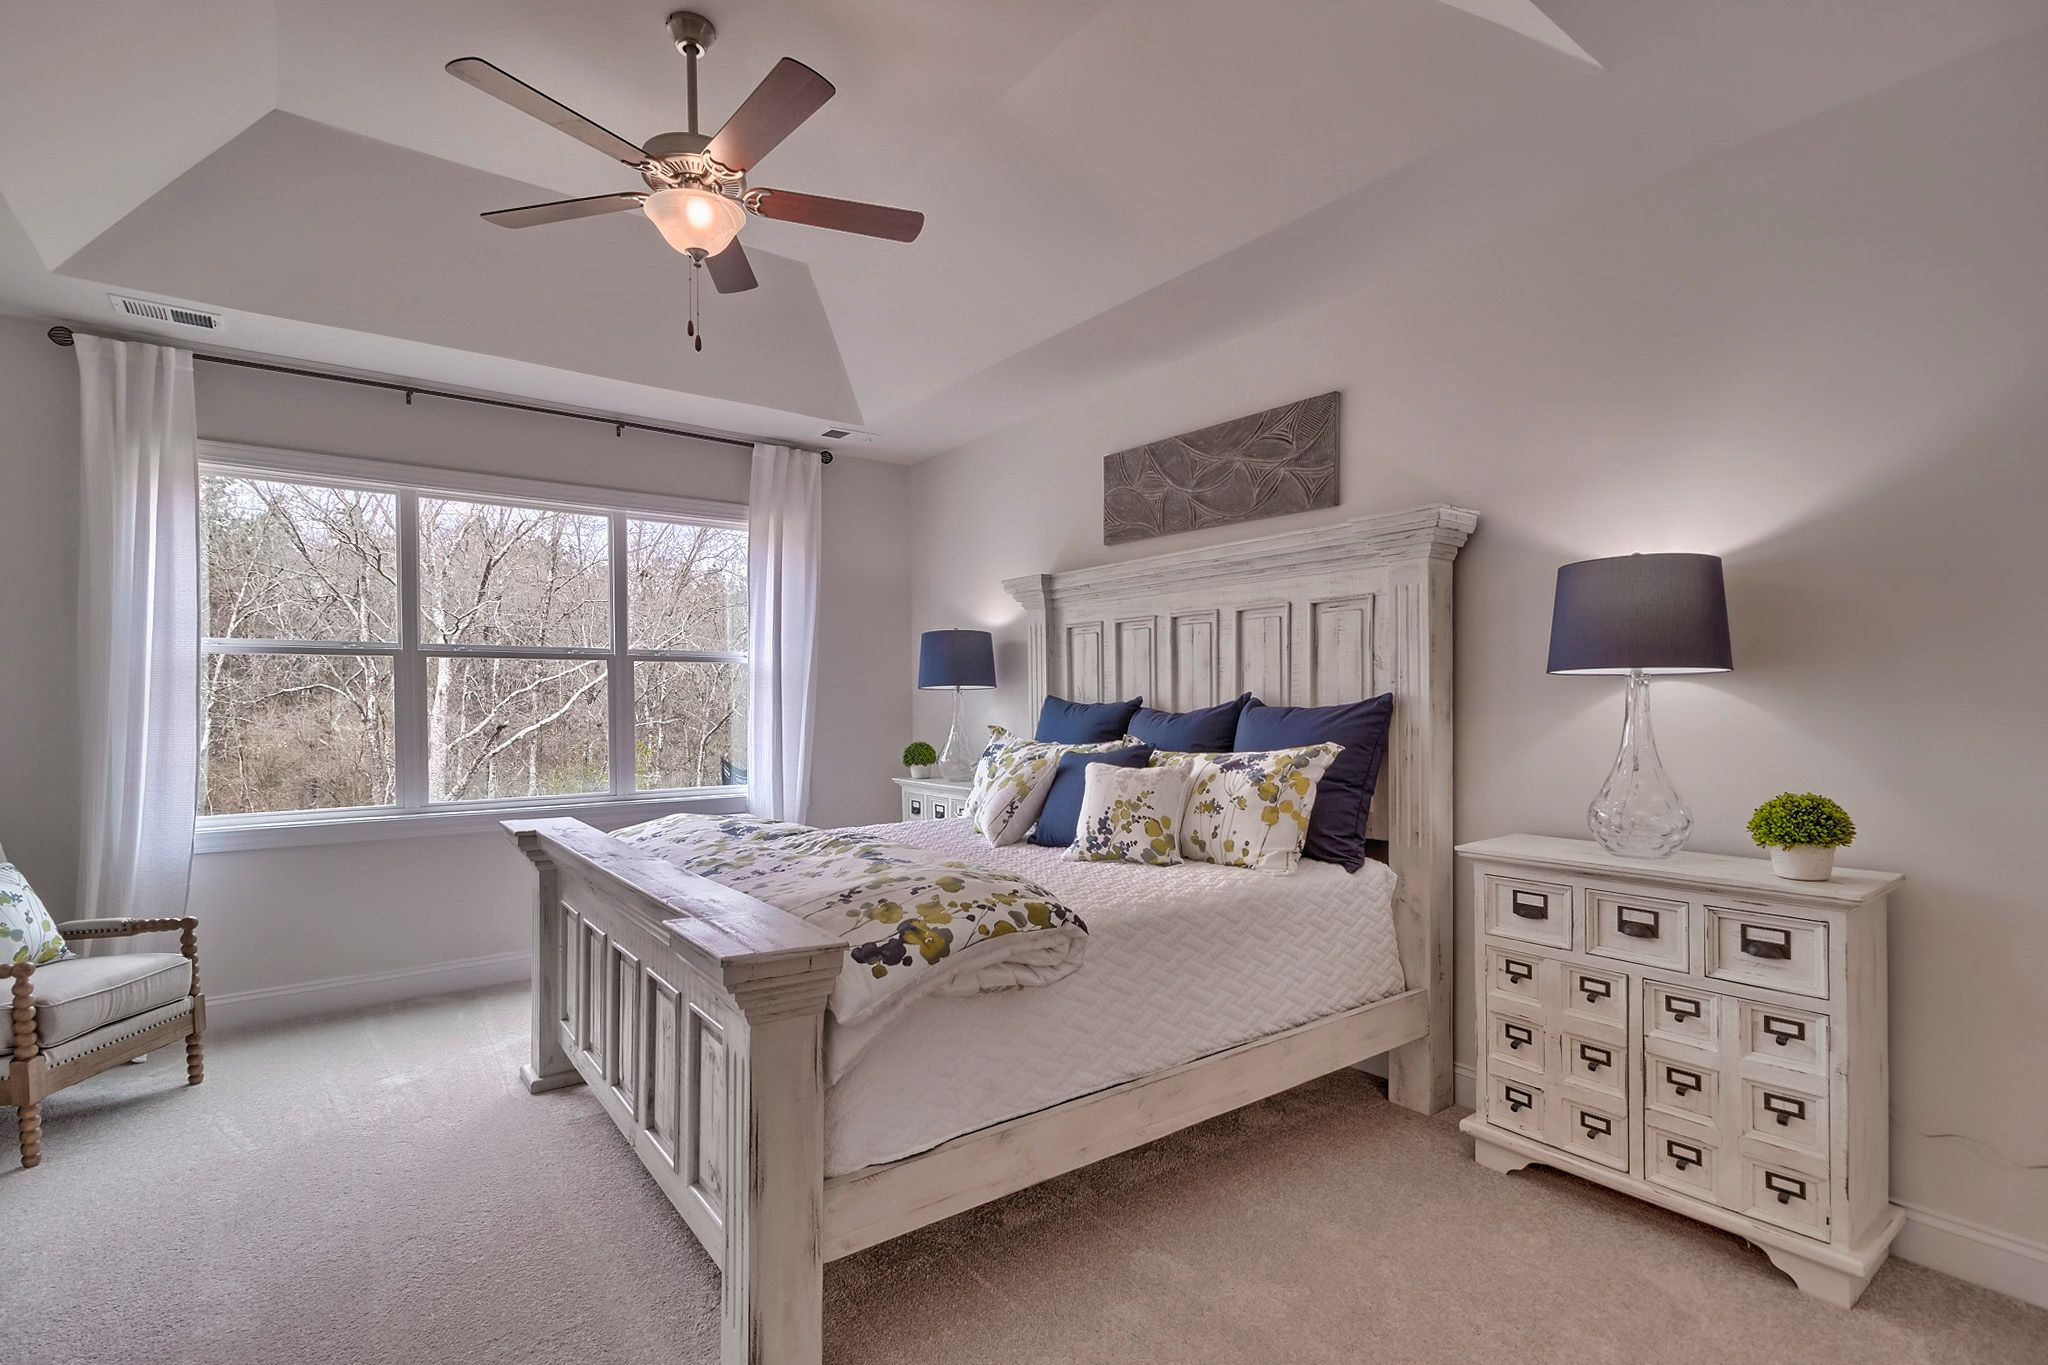 Bedroom featured in the Woodlawn By Stanley Martin Homes in Augusta, SC